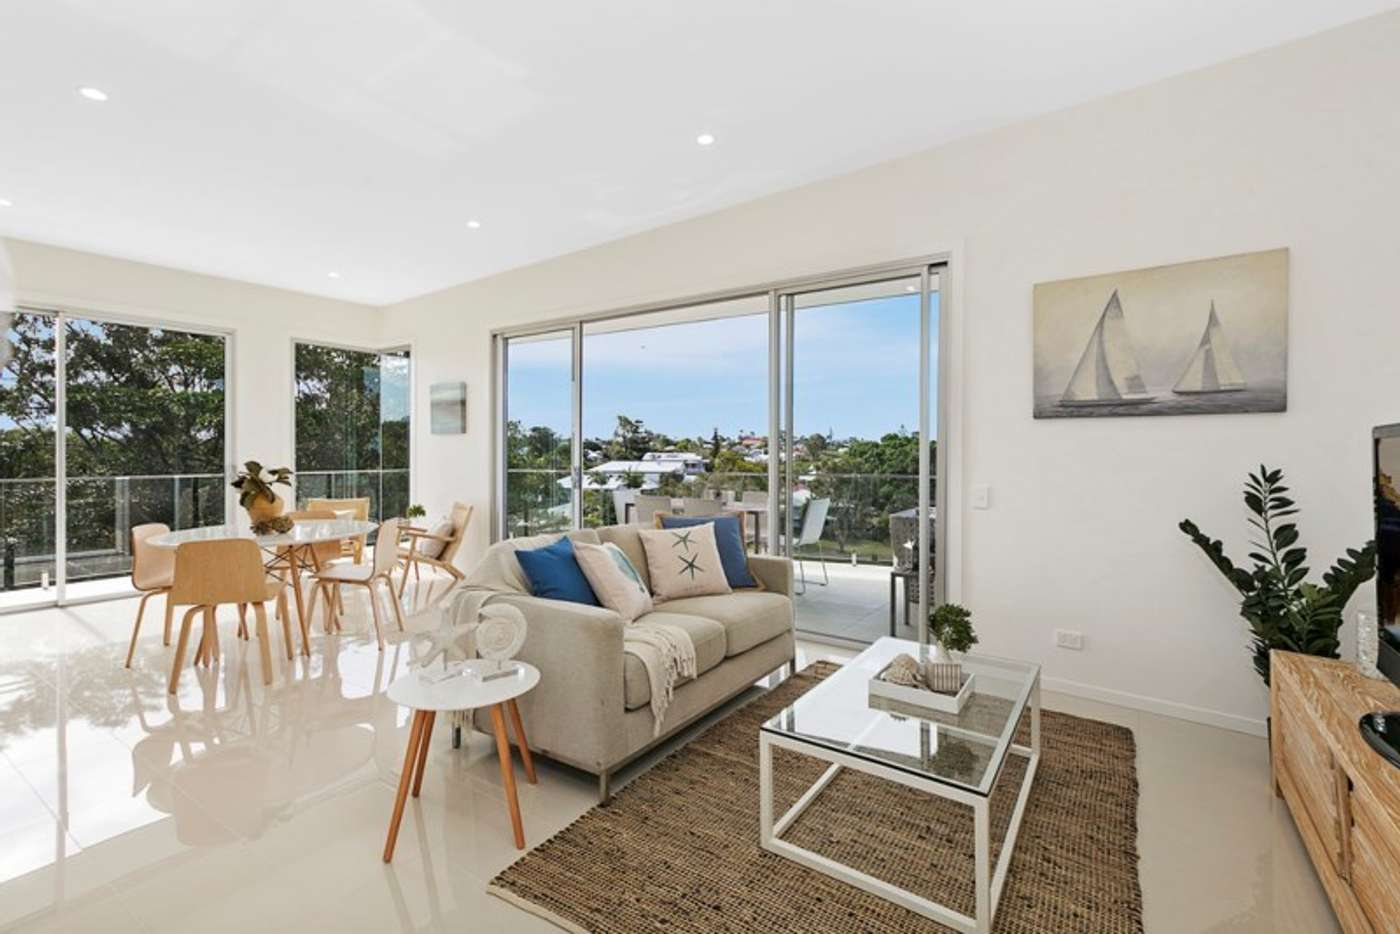 Main view of Homely apartment listing, 21/22 Bay Terrace, Wynnum QLD 4178